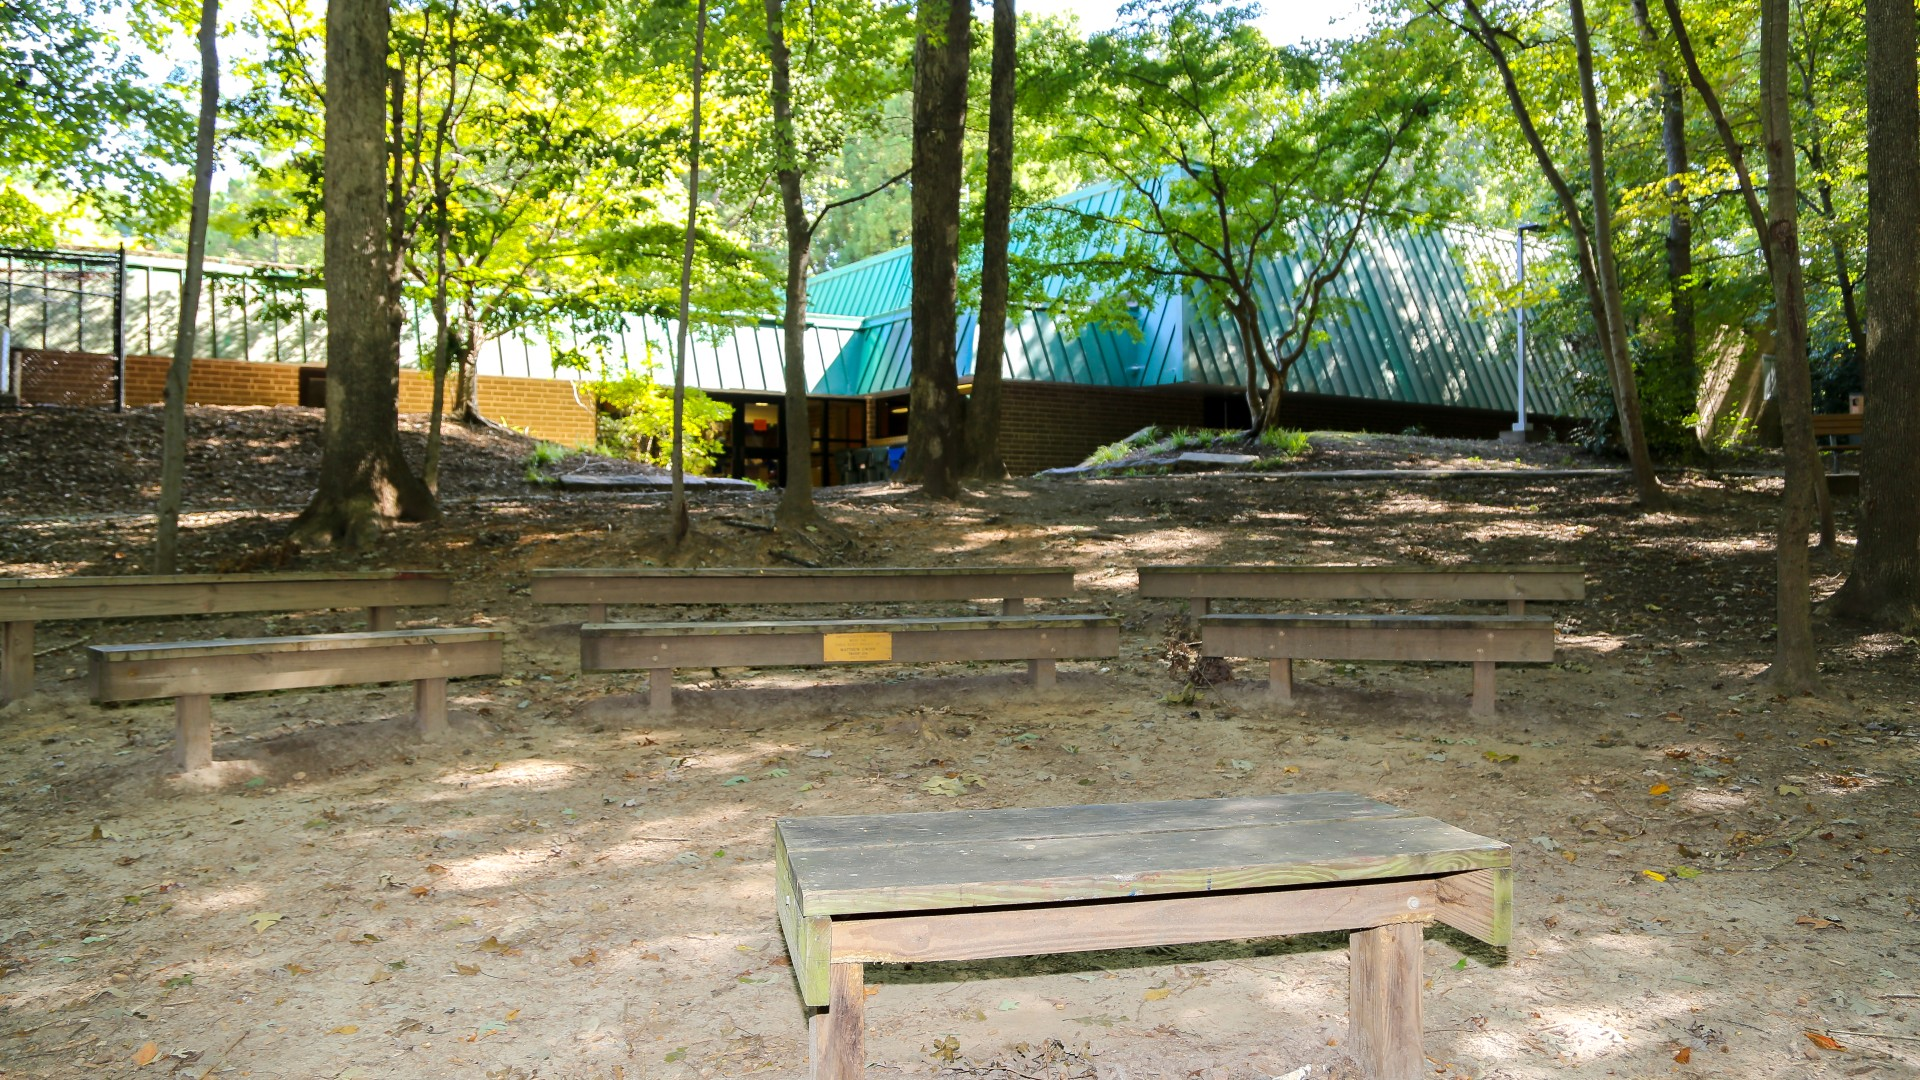 Optimist Park nature amphitheater outdoors featuring a stadium seat layout with several benches